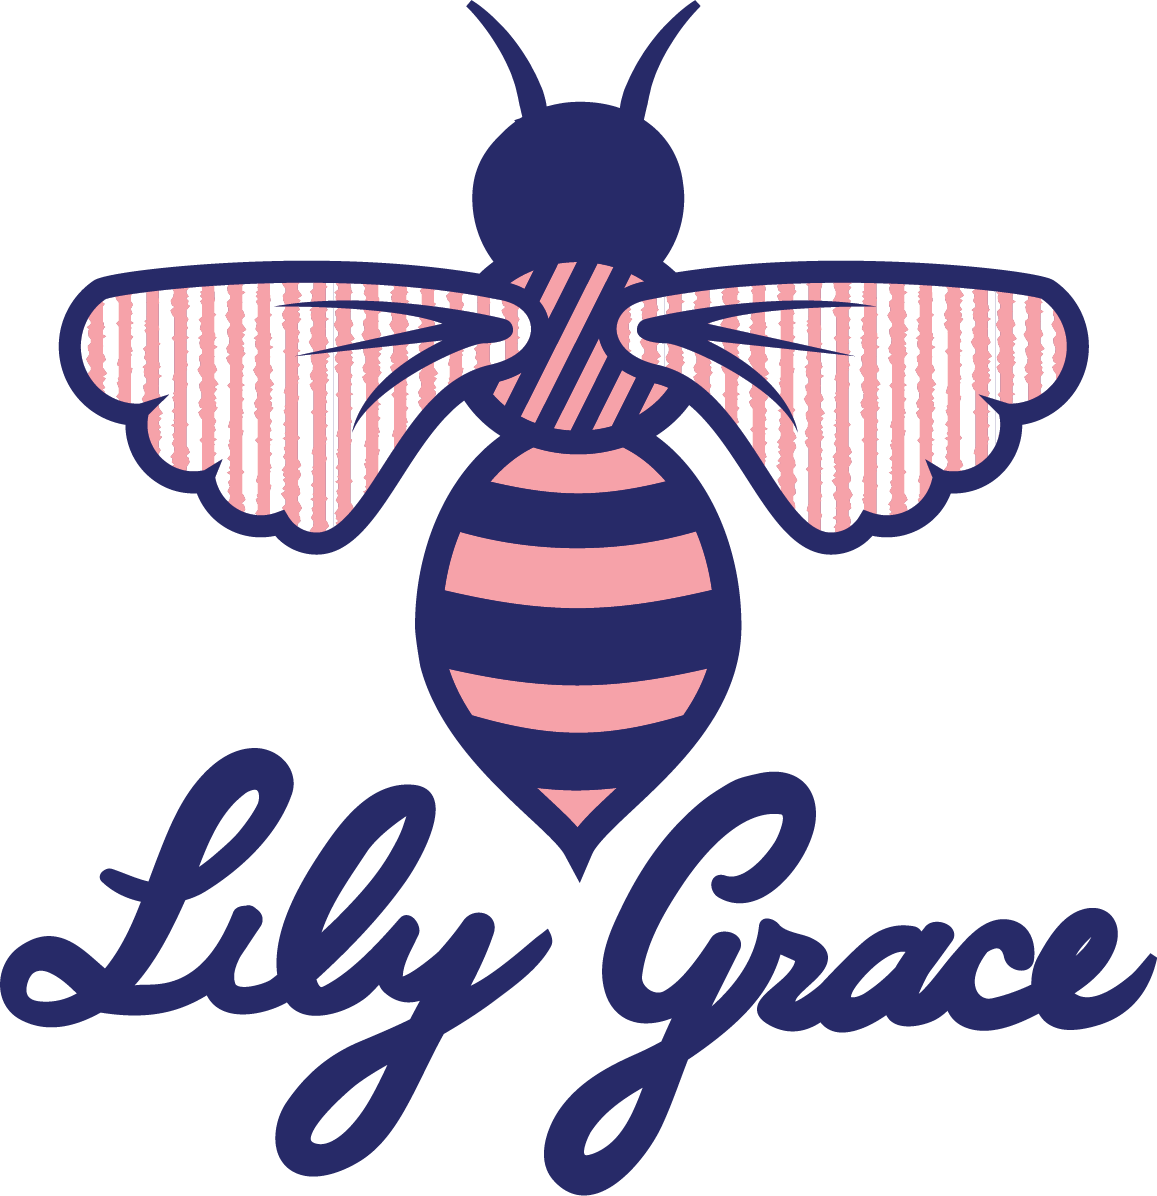 Clipart bow simply southern. Lily grace preppy shirts